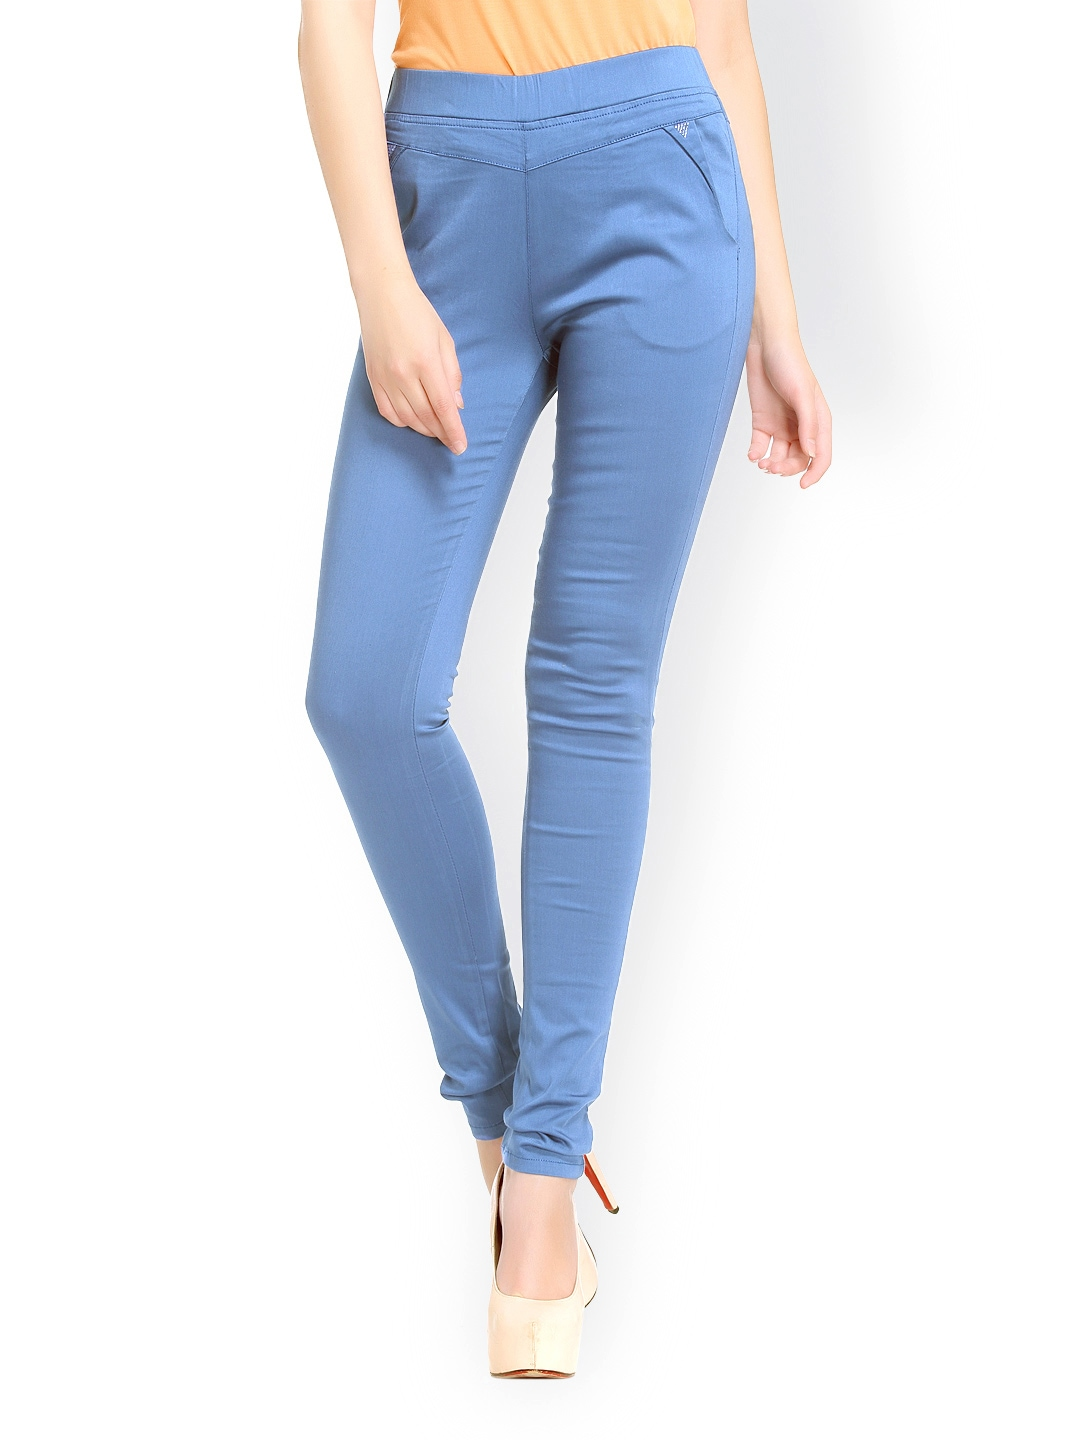 Jeggings Women's Jeans & Jeggings: Shop from a wide range of Jeggings Women's Jeans & Jeggings online at best prices in India. Check out price and features of Jeggings Women's Jeans & Jeggings at gtacashbank.ga No cost EMI offers, COD and great discounts available on eligible purchases.